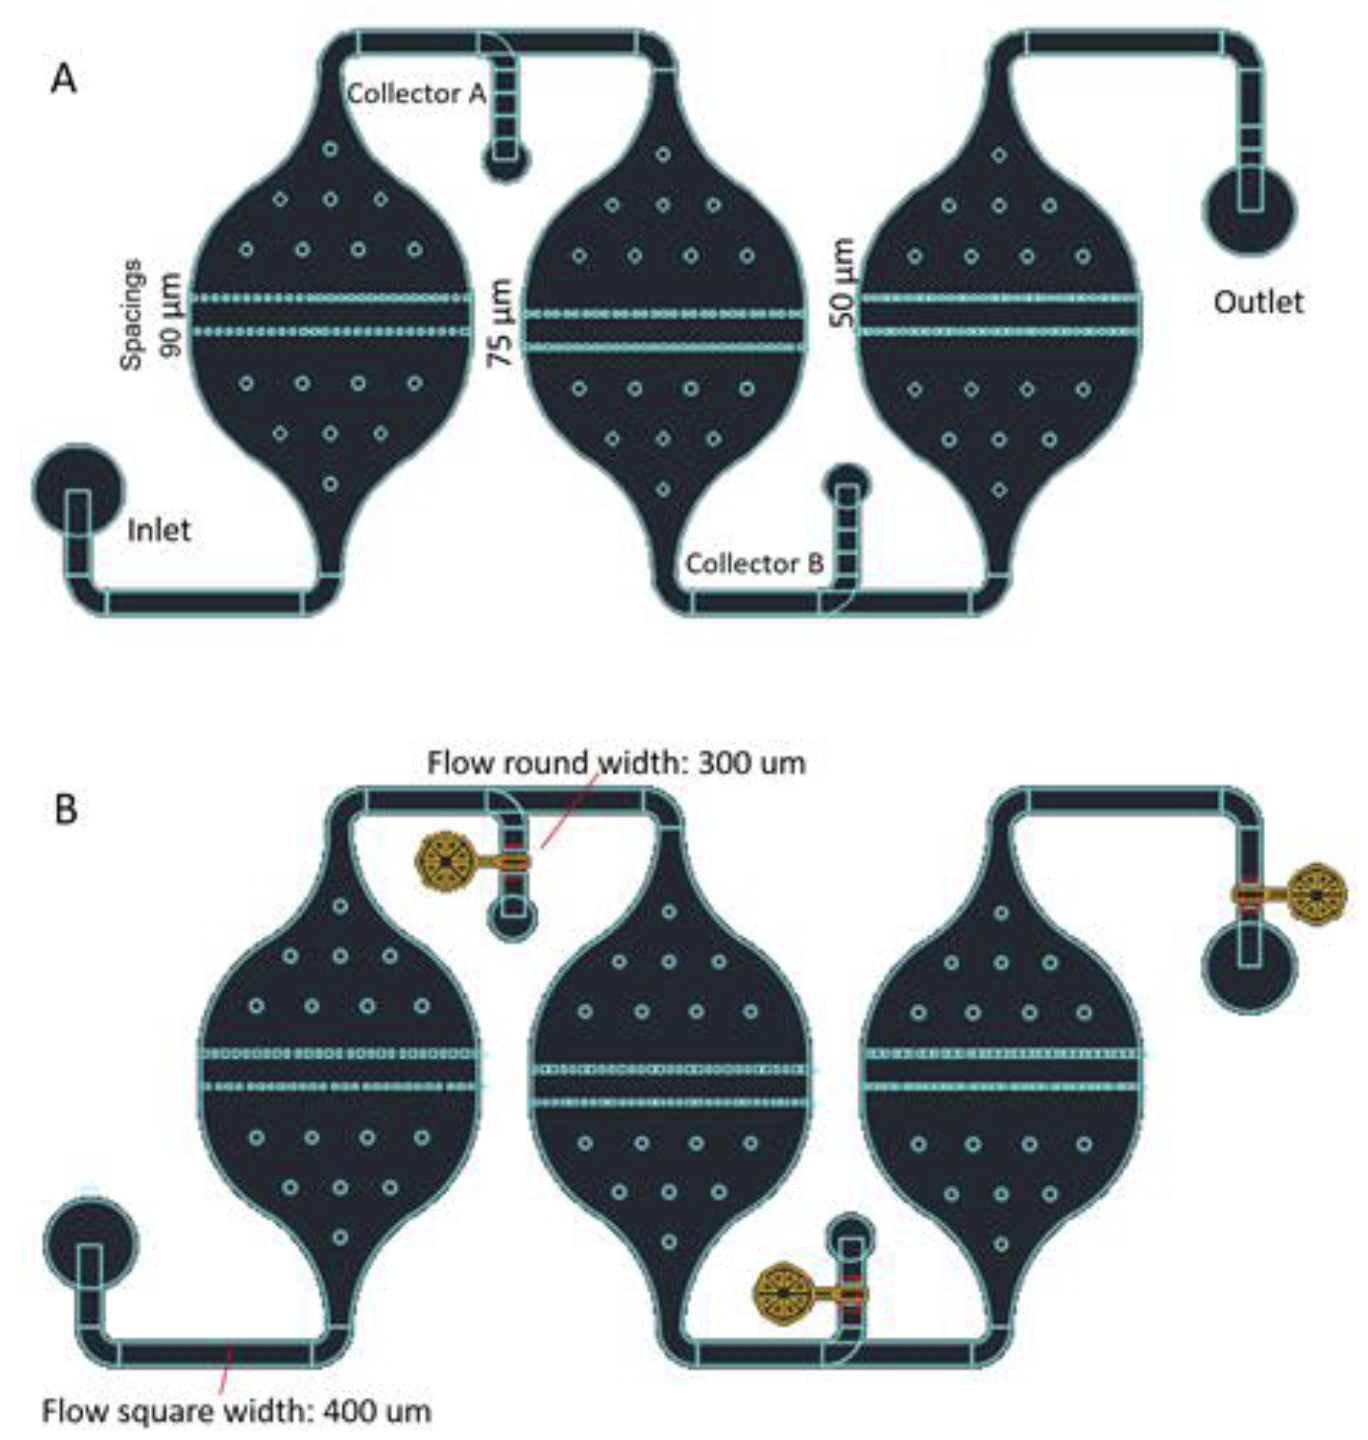 FIgure 1.  Device schematic. (A) Each separation chamber has different pillar spacings to capture cells of different sizes. (B) Integrated valves allow selective retrieval of particular cell sizes.